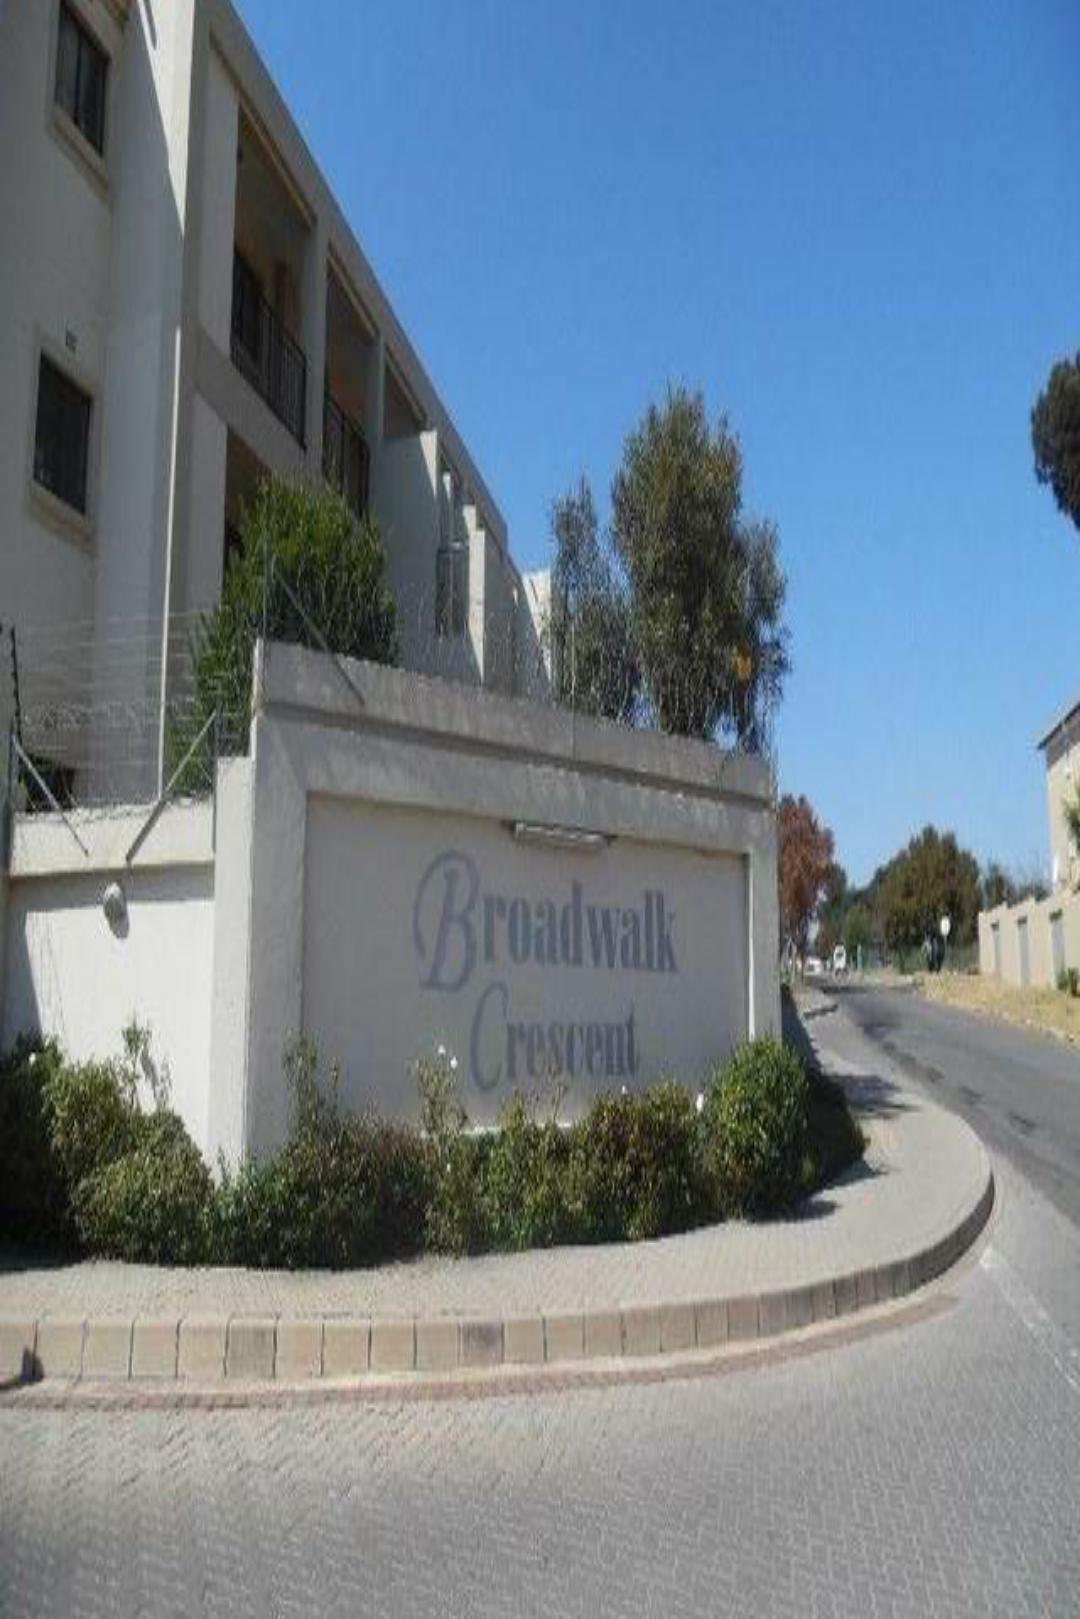 AVAILABLE 1ST FEBRUARY! 1Bed, 1Bath Apartment To Let In Broadwalk Crescent, Midrand!